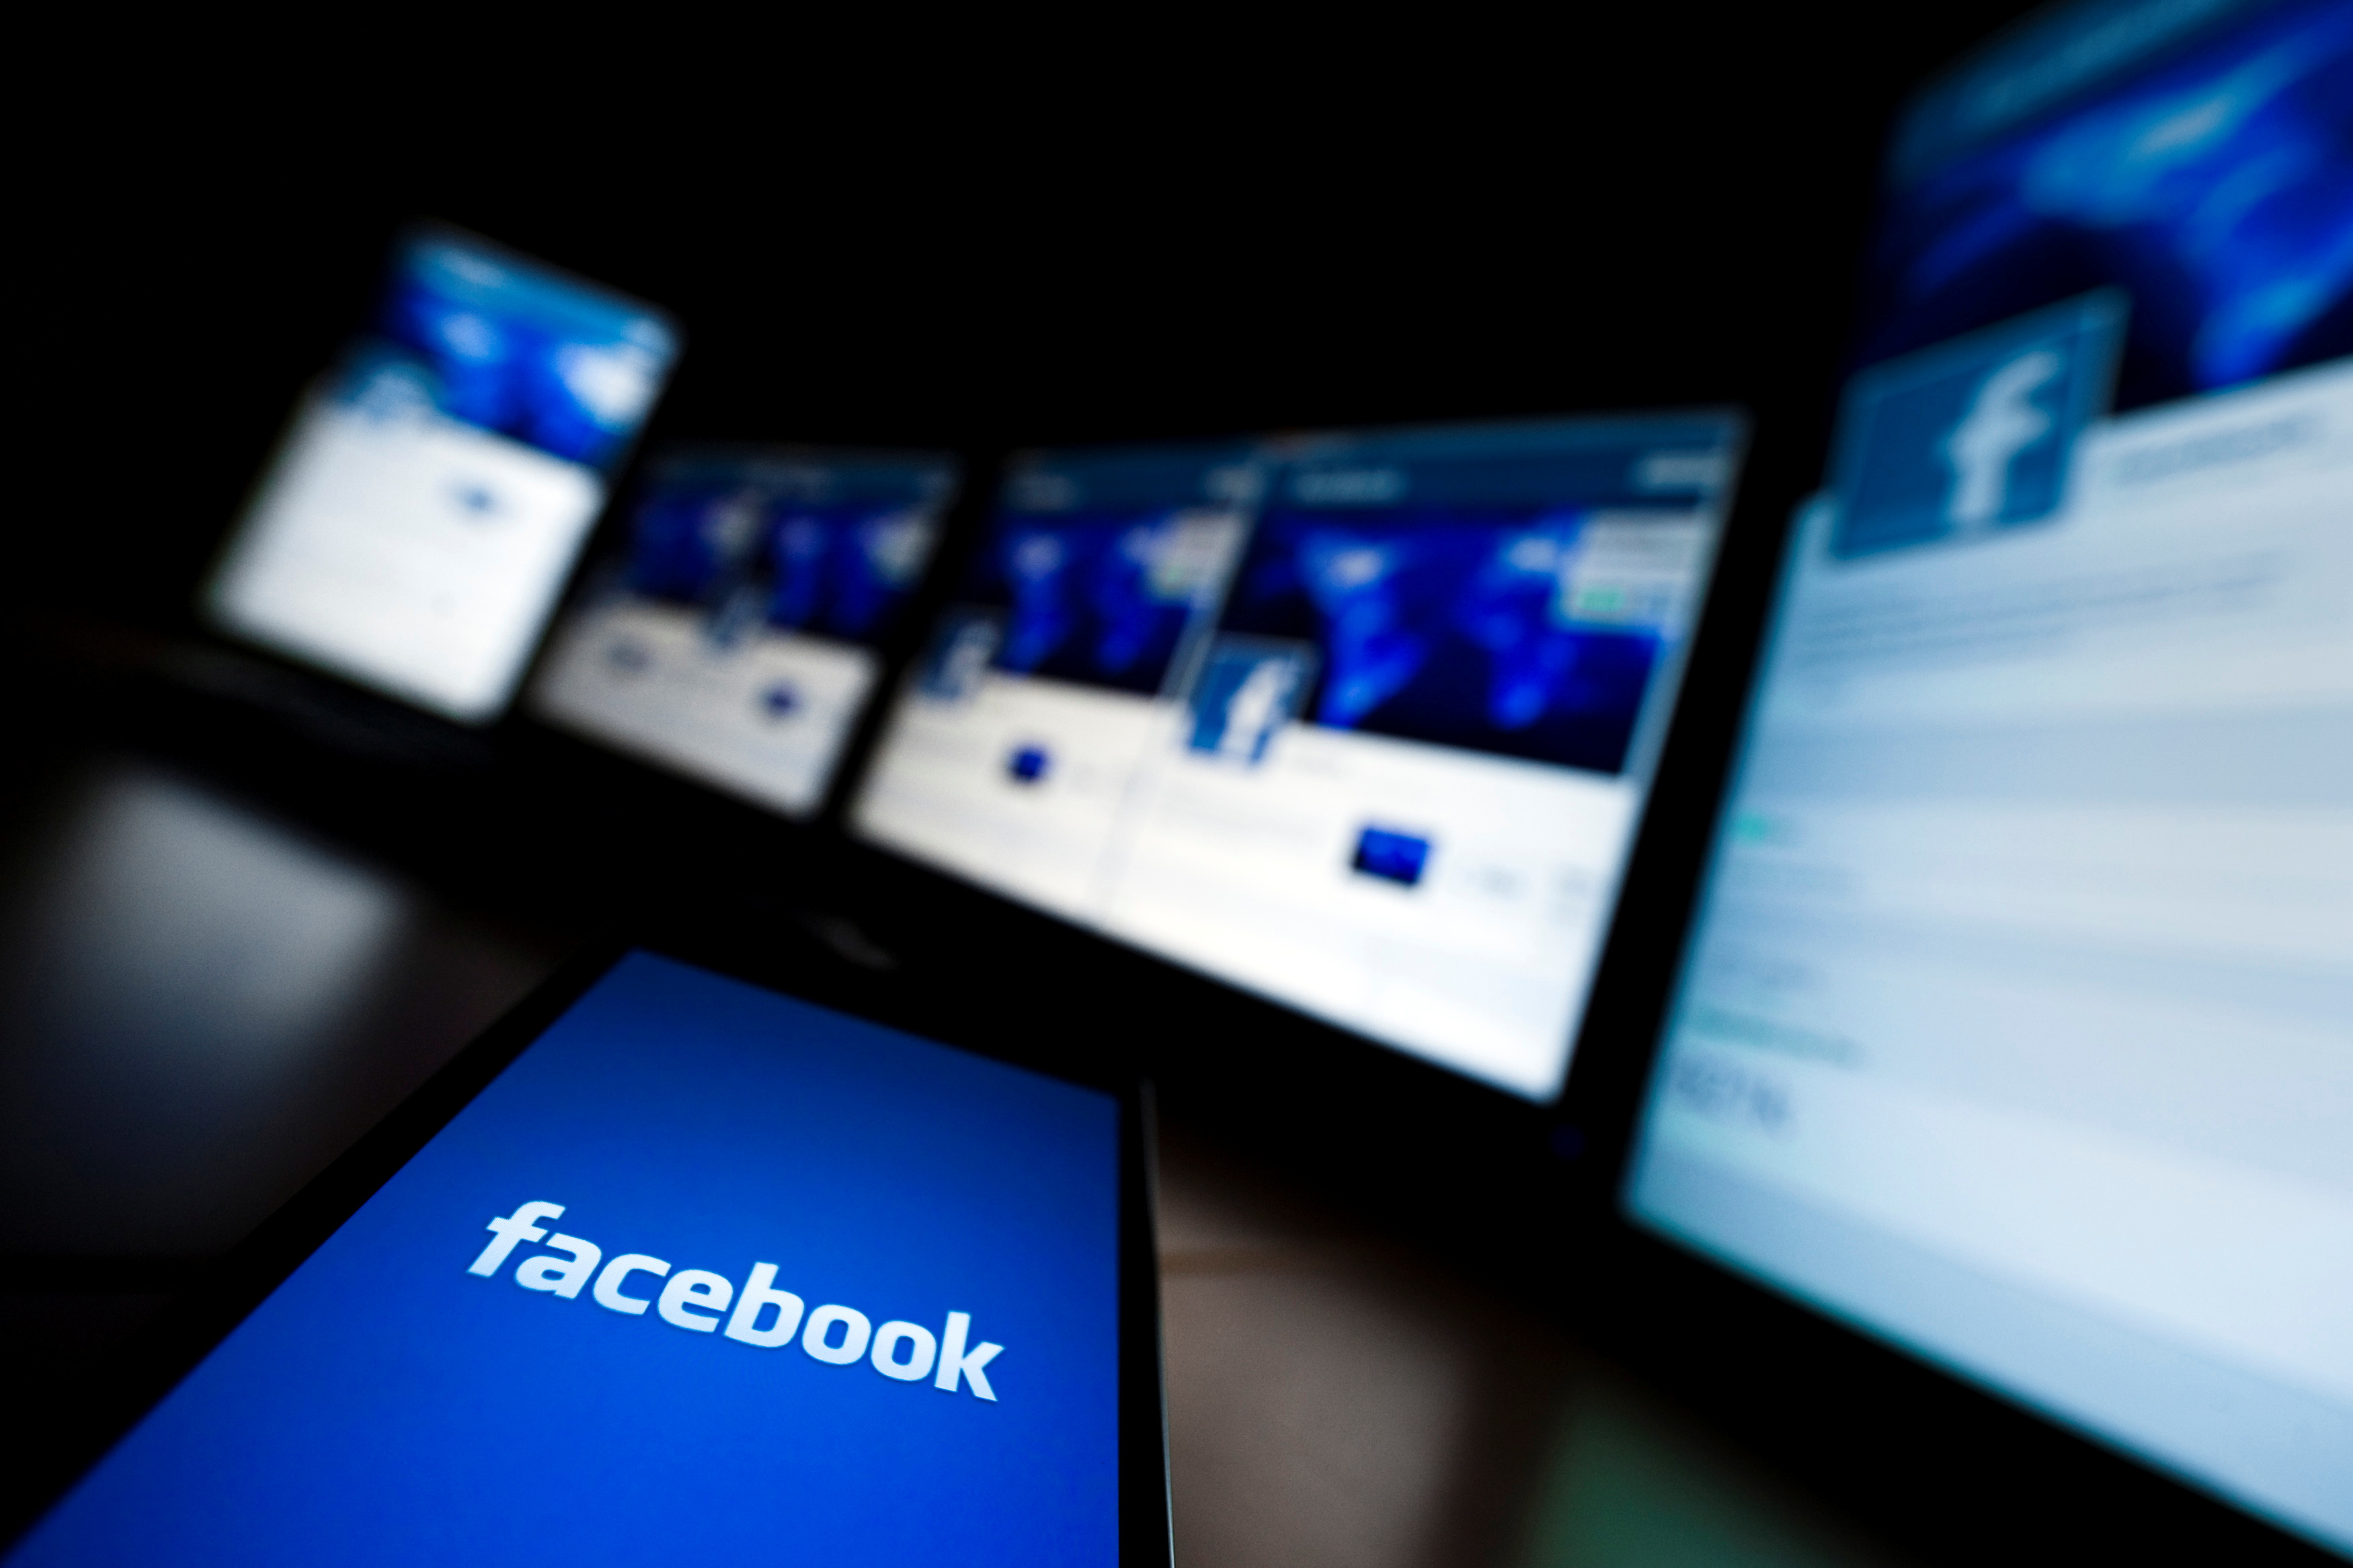 The loading screen of the Facebook application on a mobile phone is seen in this photo illustration taken in Lavigny May 16, 2012. REUTERS/Valentin Flauraud/File Photo